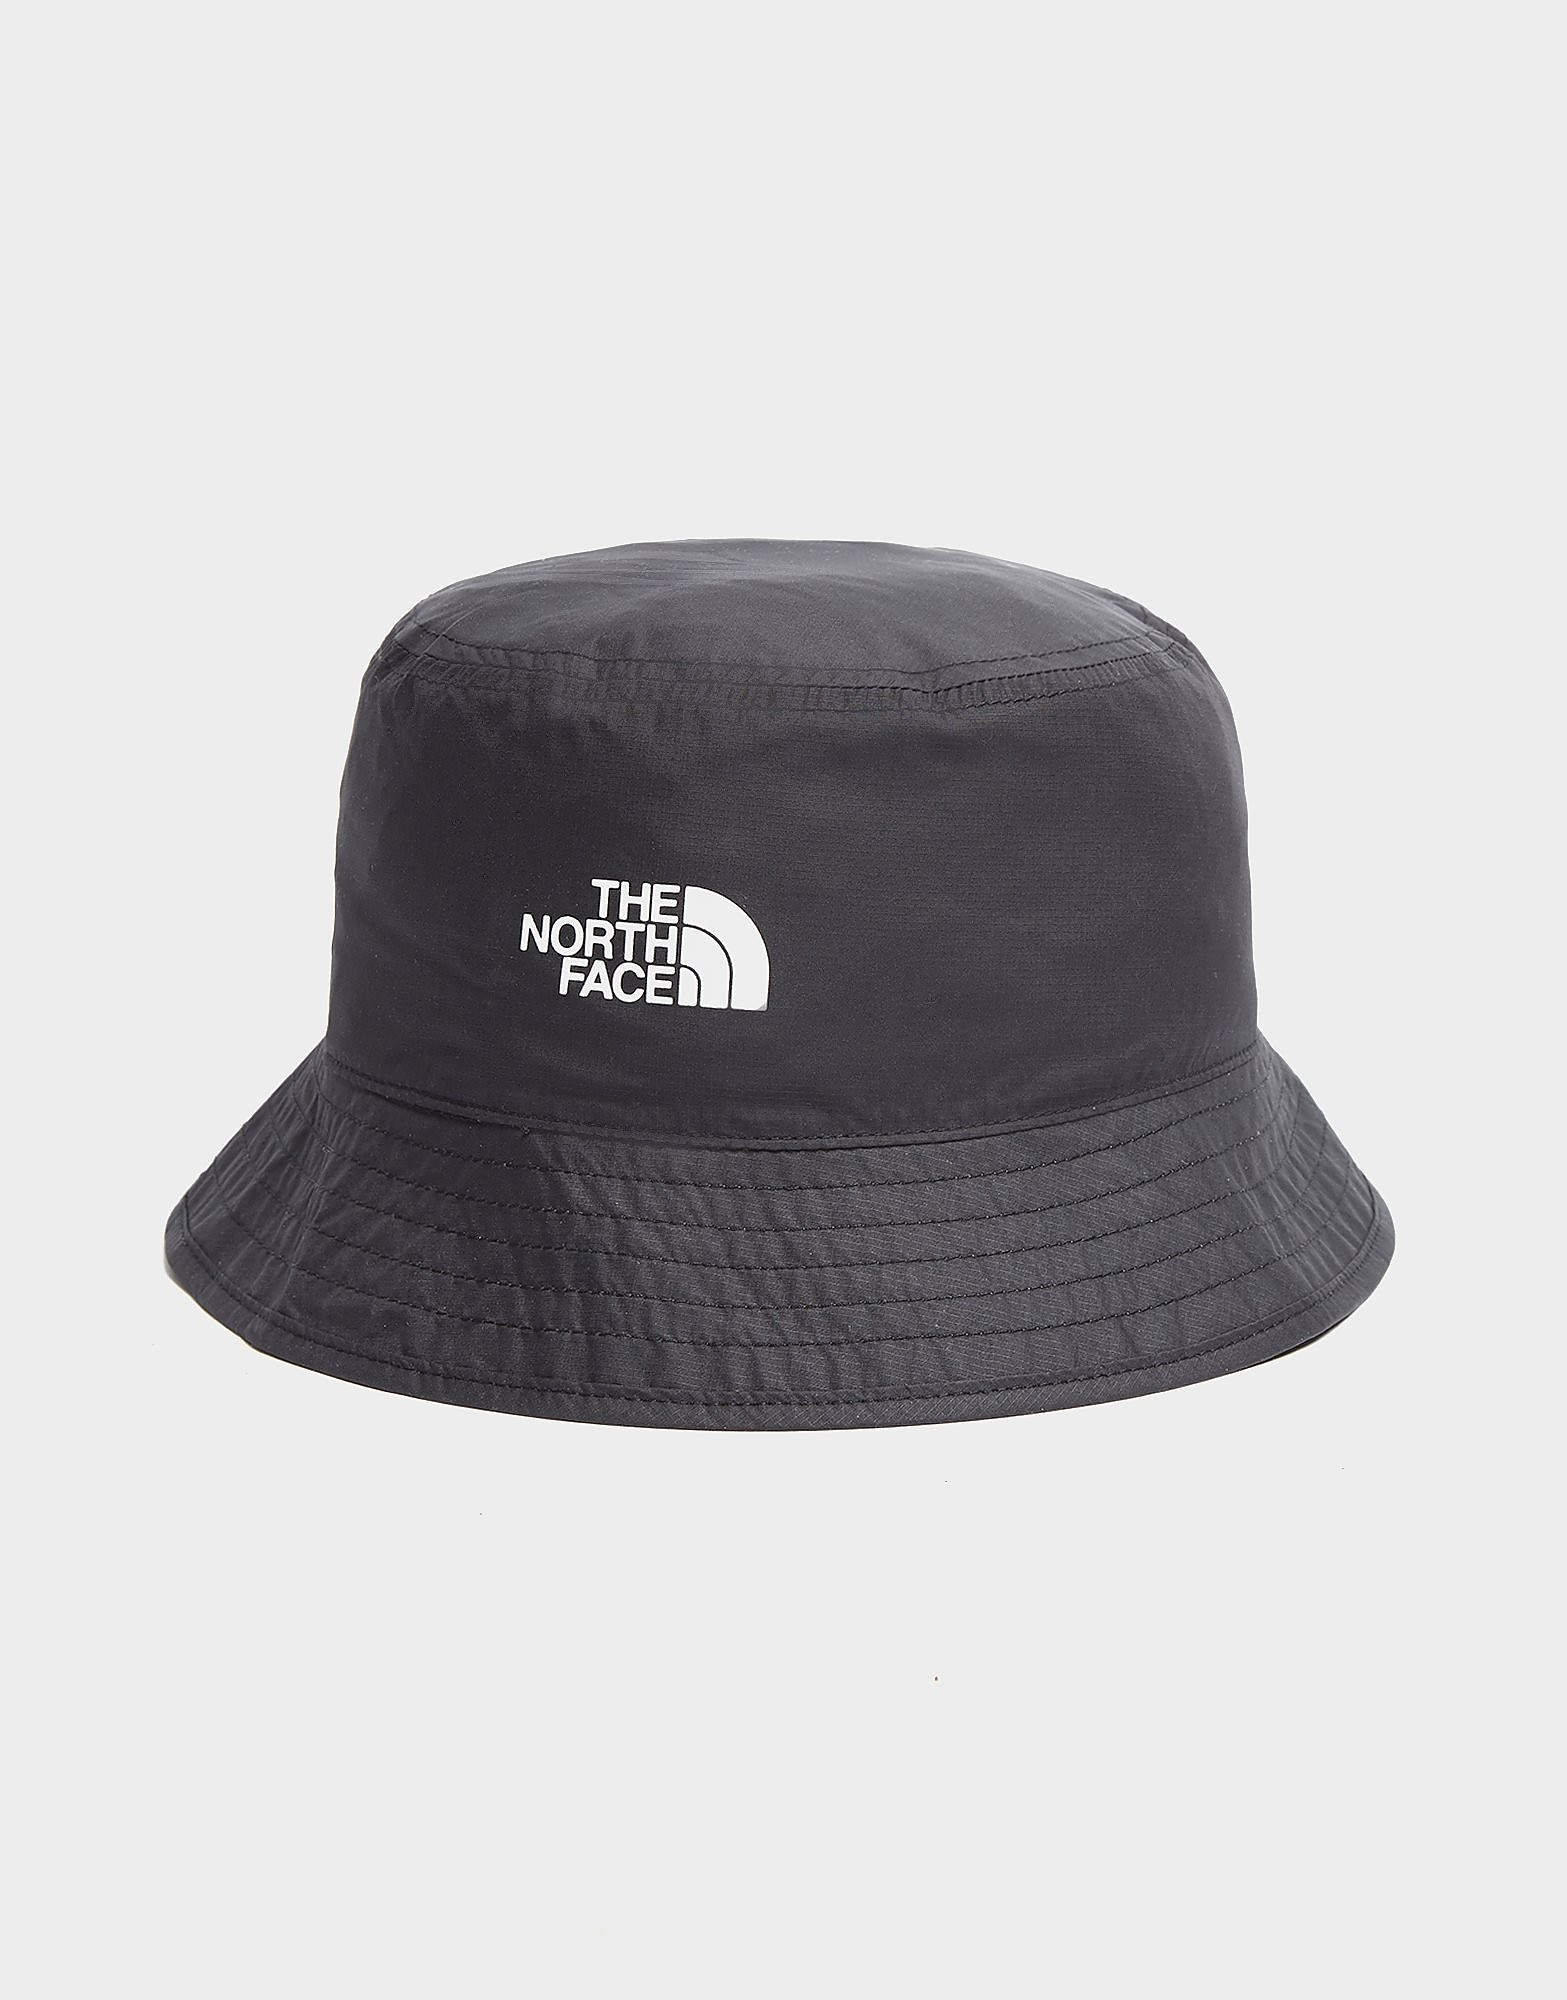 The North Face Bob Sun Stash